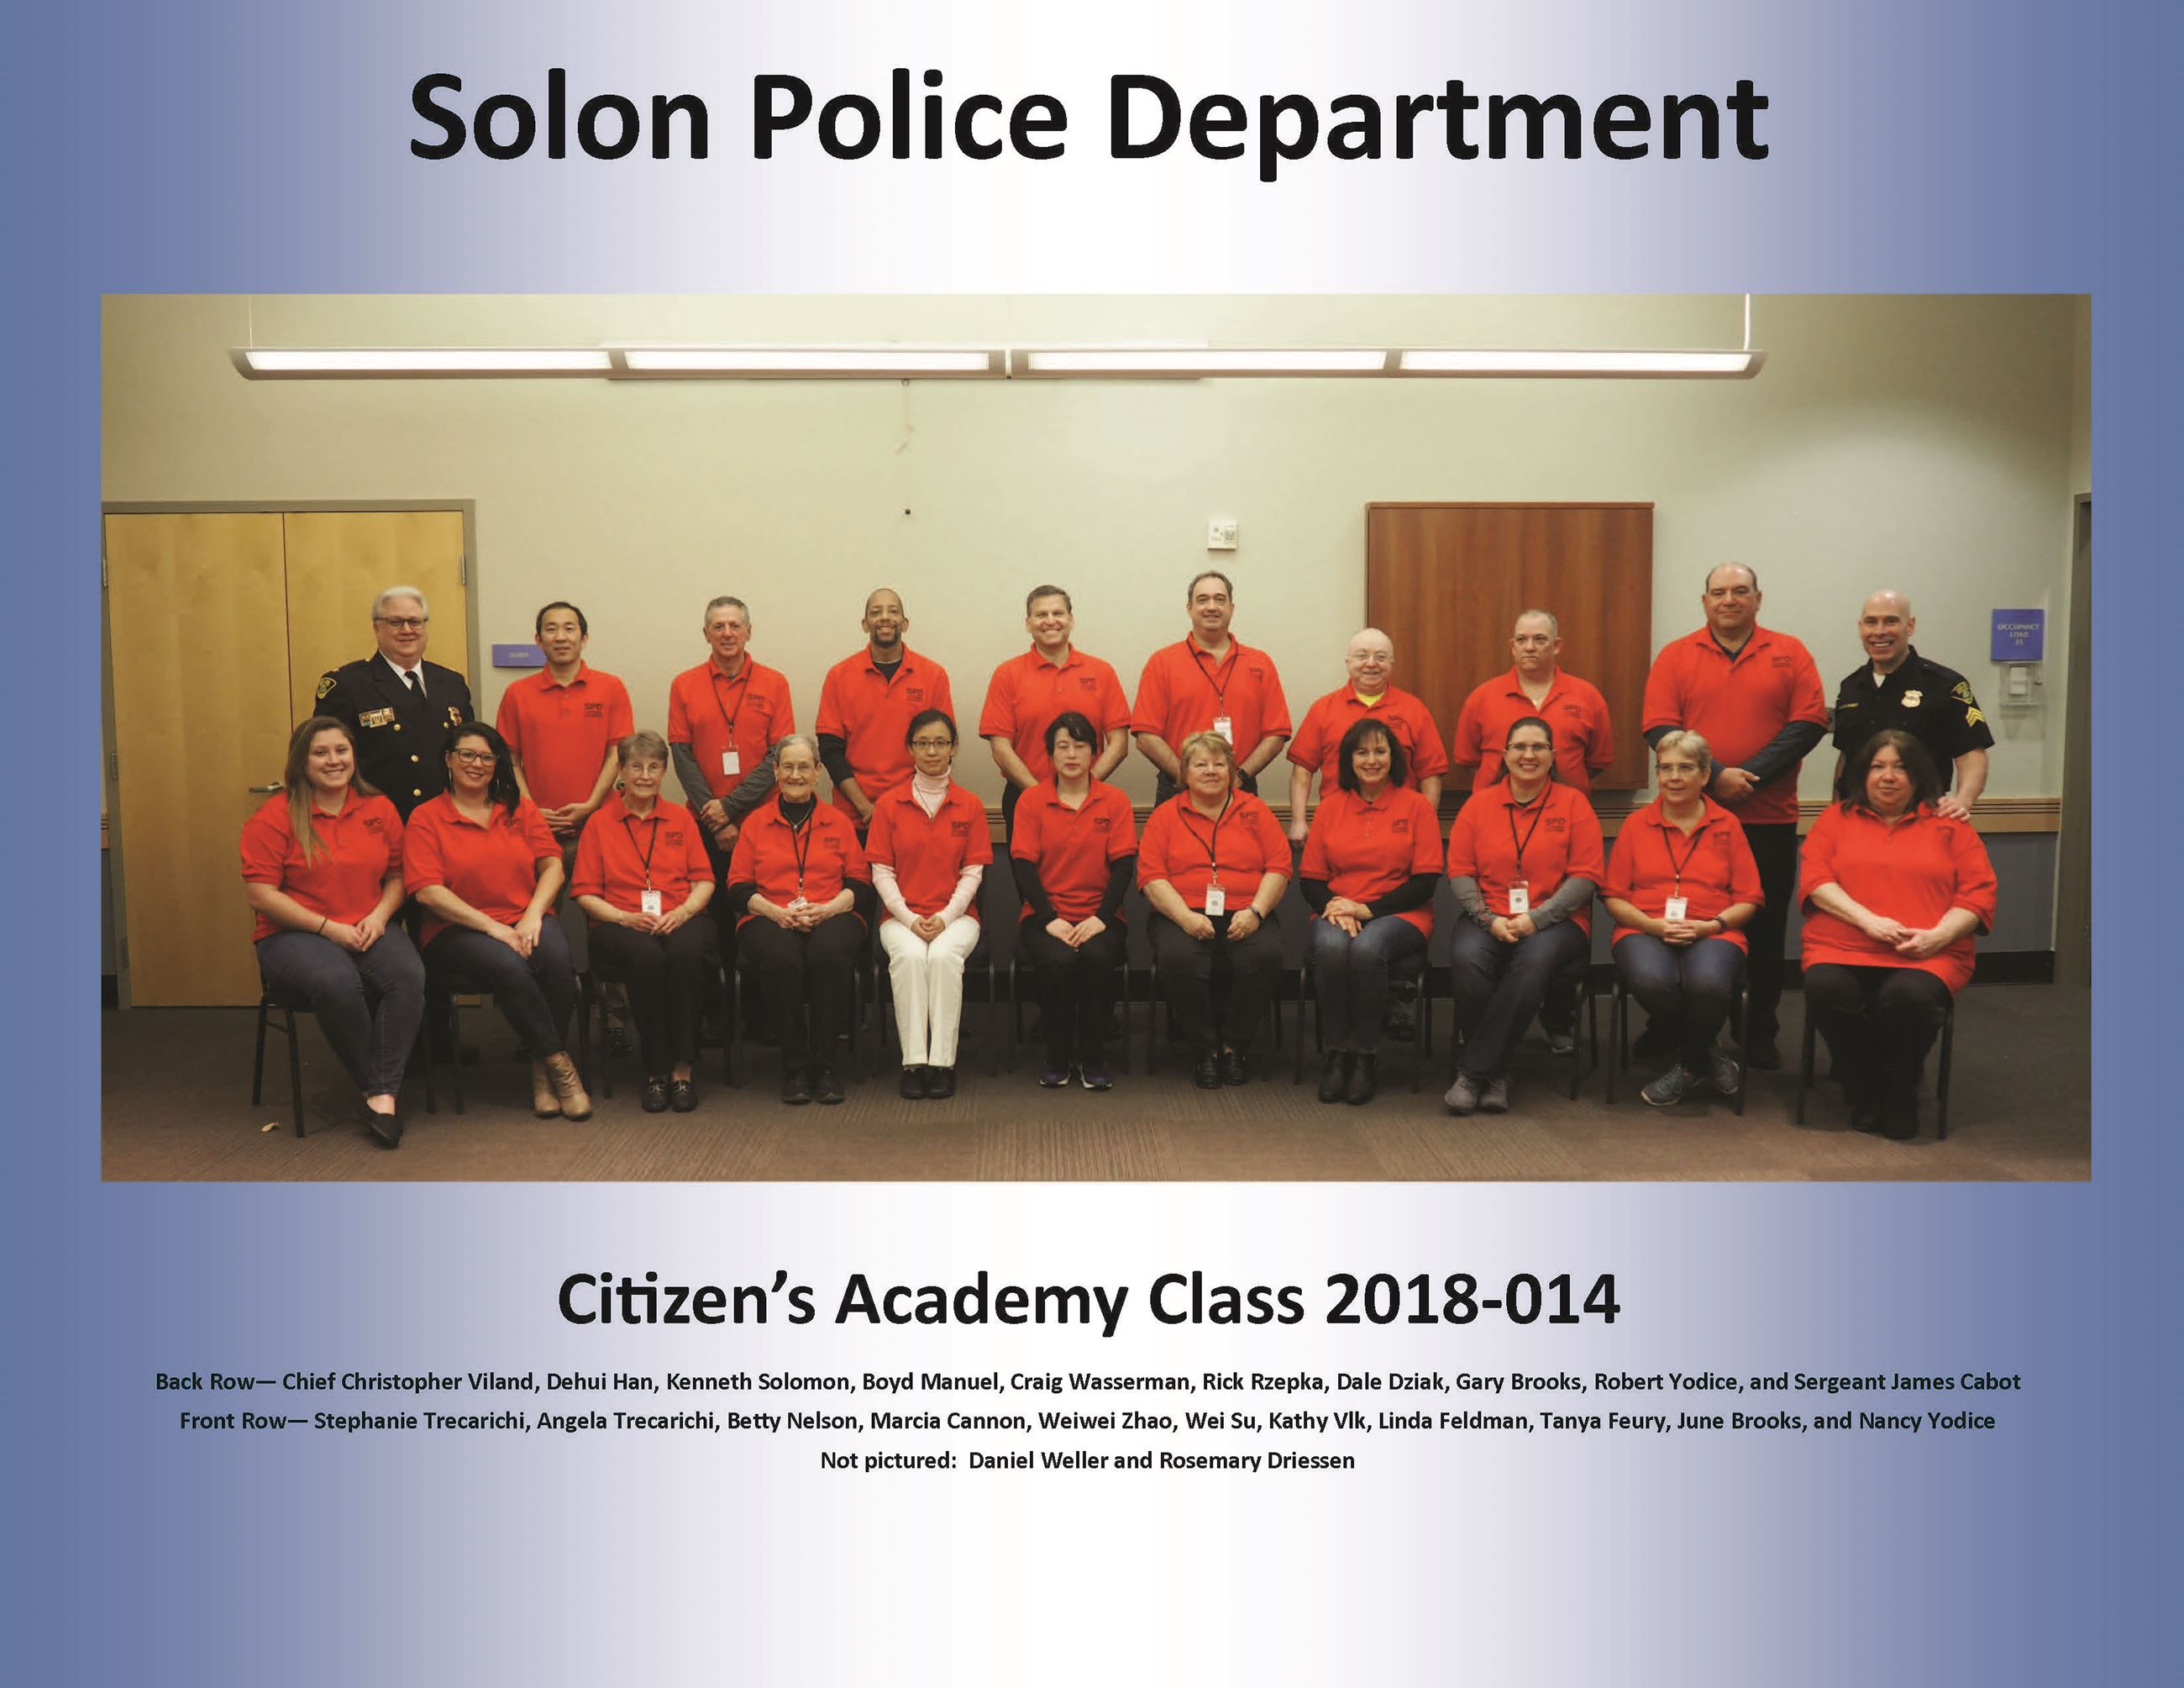 Citizens Academy Photo Fall 2018